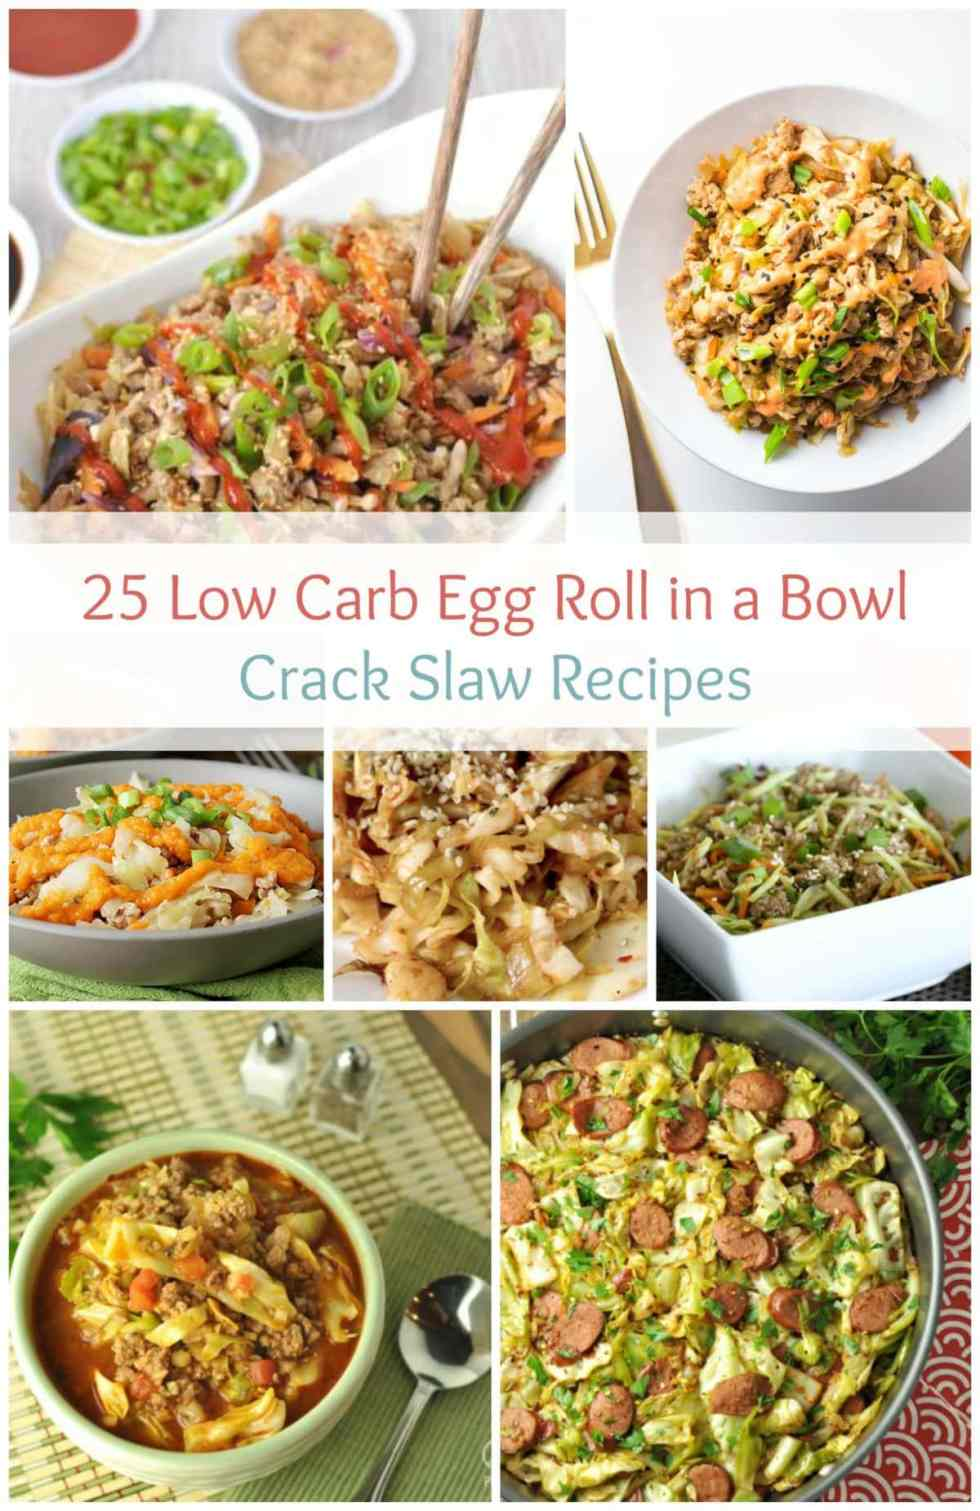 25 Low Carb Egg Roll in a Bowl Crack Slaw Recipes